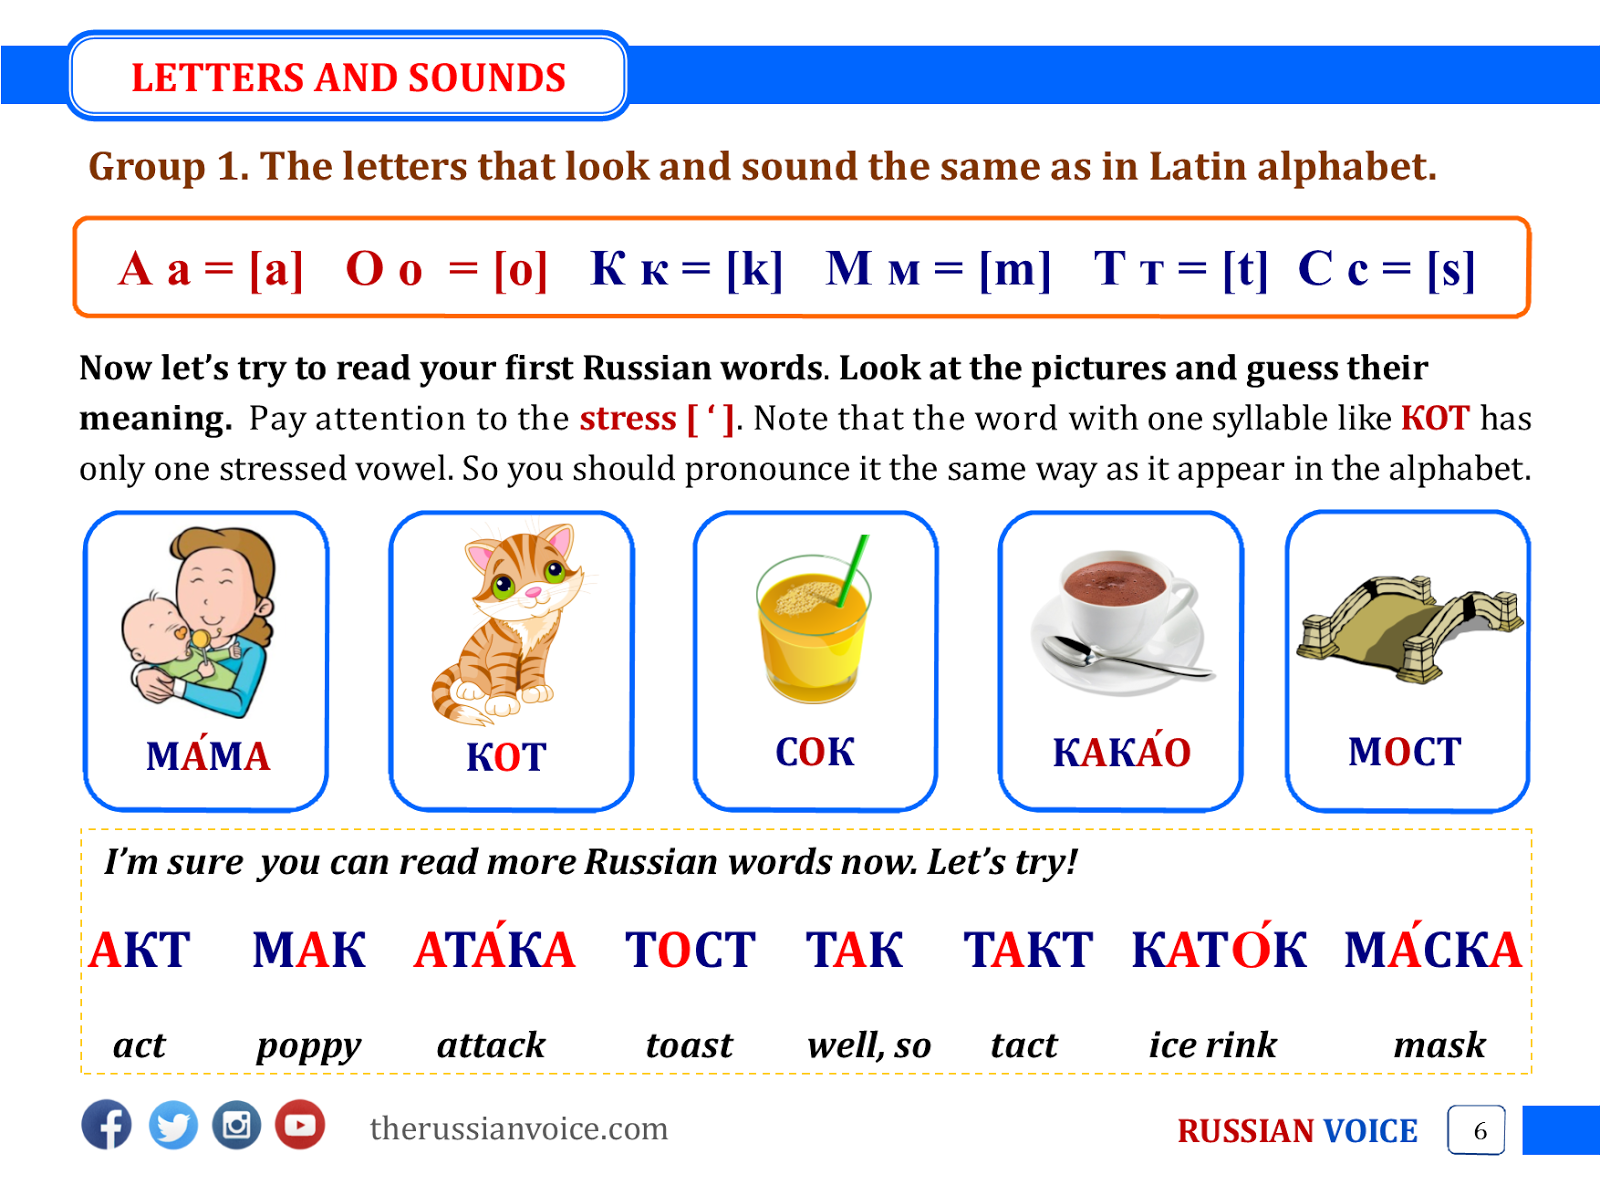 Russian Learning Materials For Beginners ~ Russian Voice  Russian